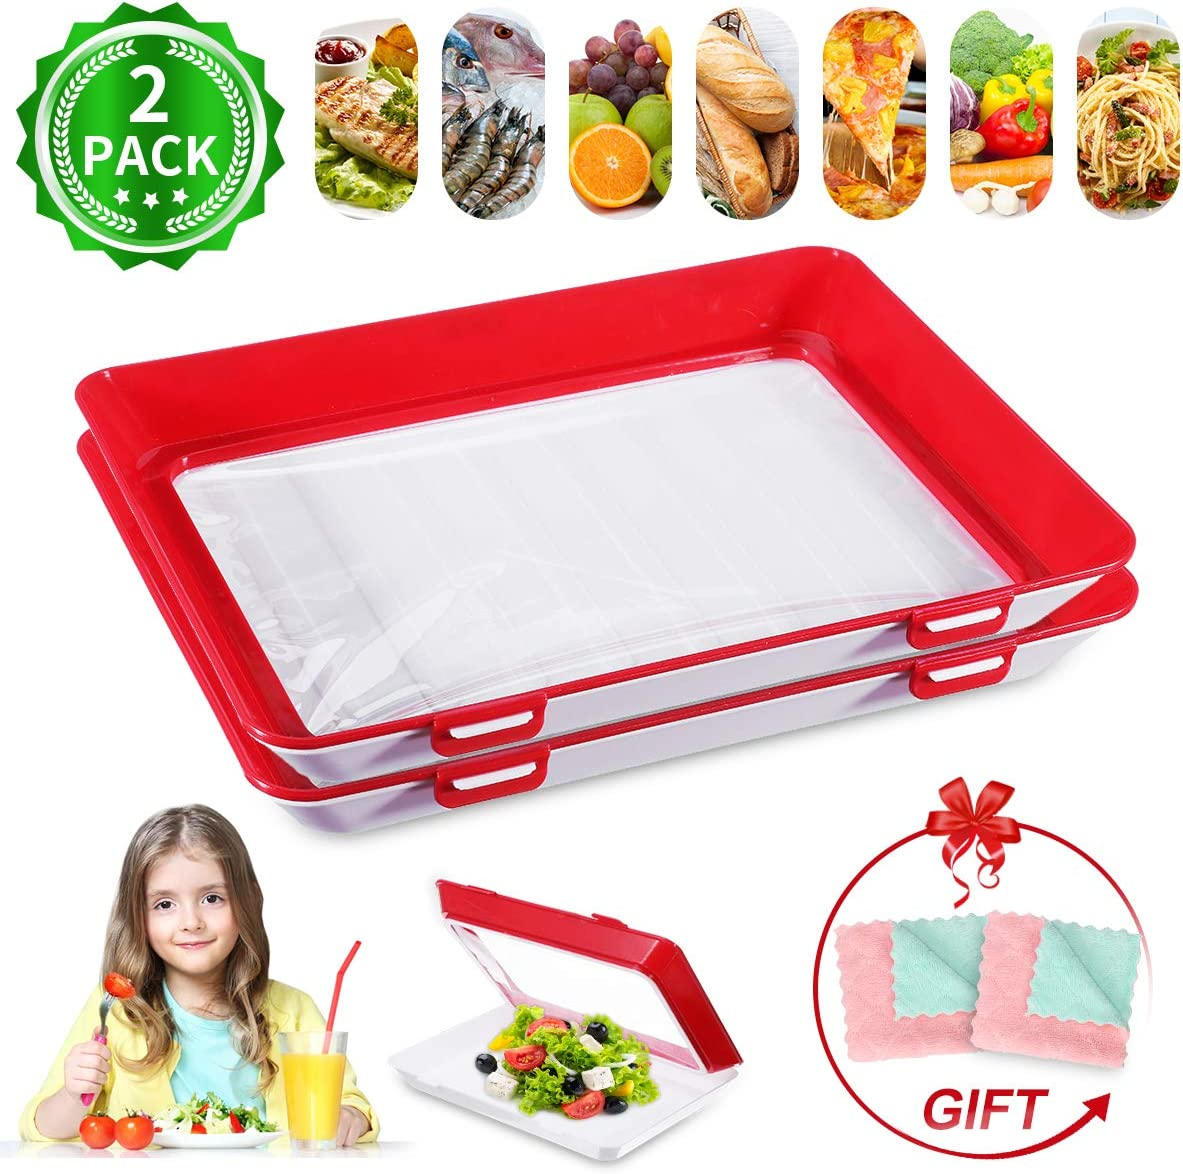 Stackable Food Preservation Tray JOYXEON Freezer Containers Food Storage Container with Elastic Lid for Vegetable Fruits Meat Fish, Reusable BPA Free, keep food fresh [Set of 2 Trays + 2 Dish Towels]